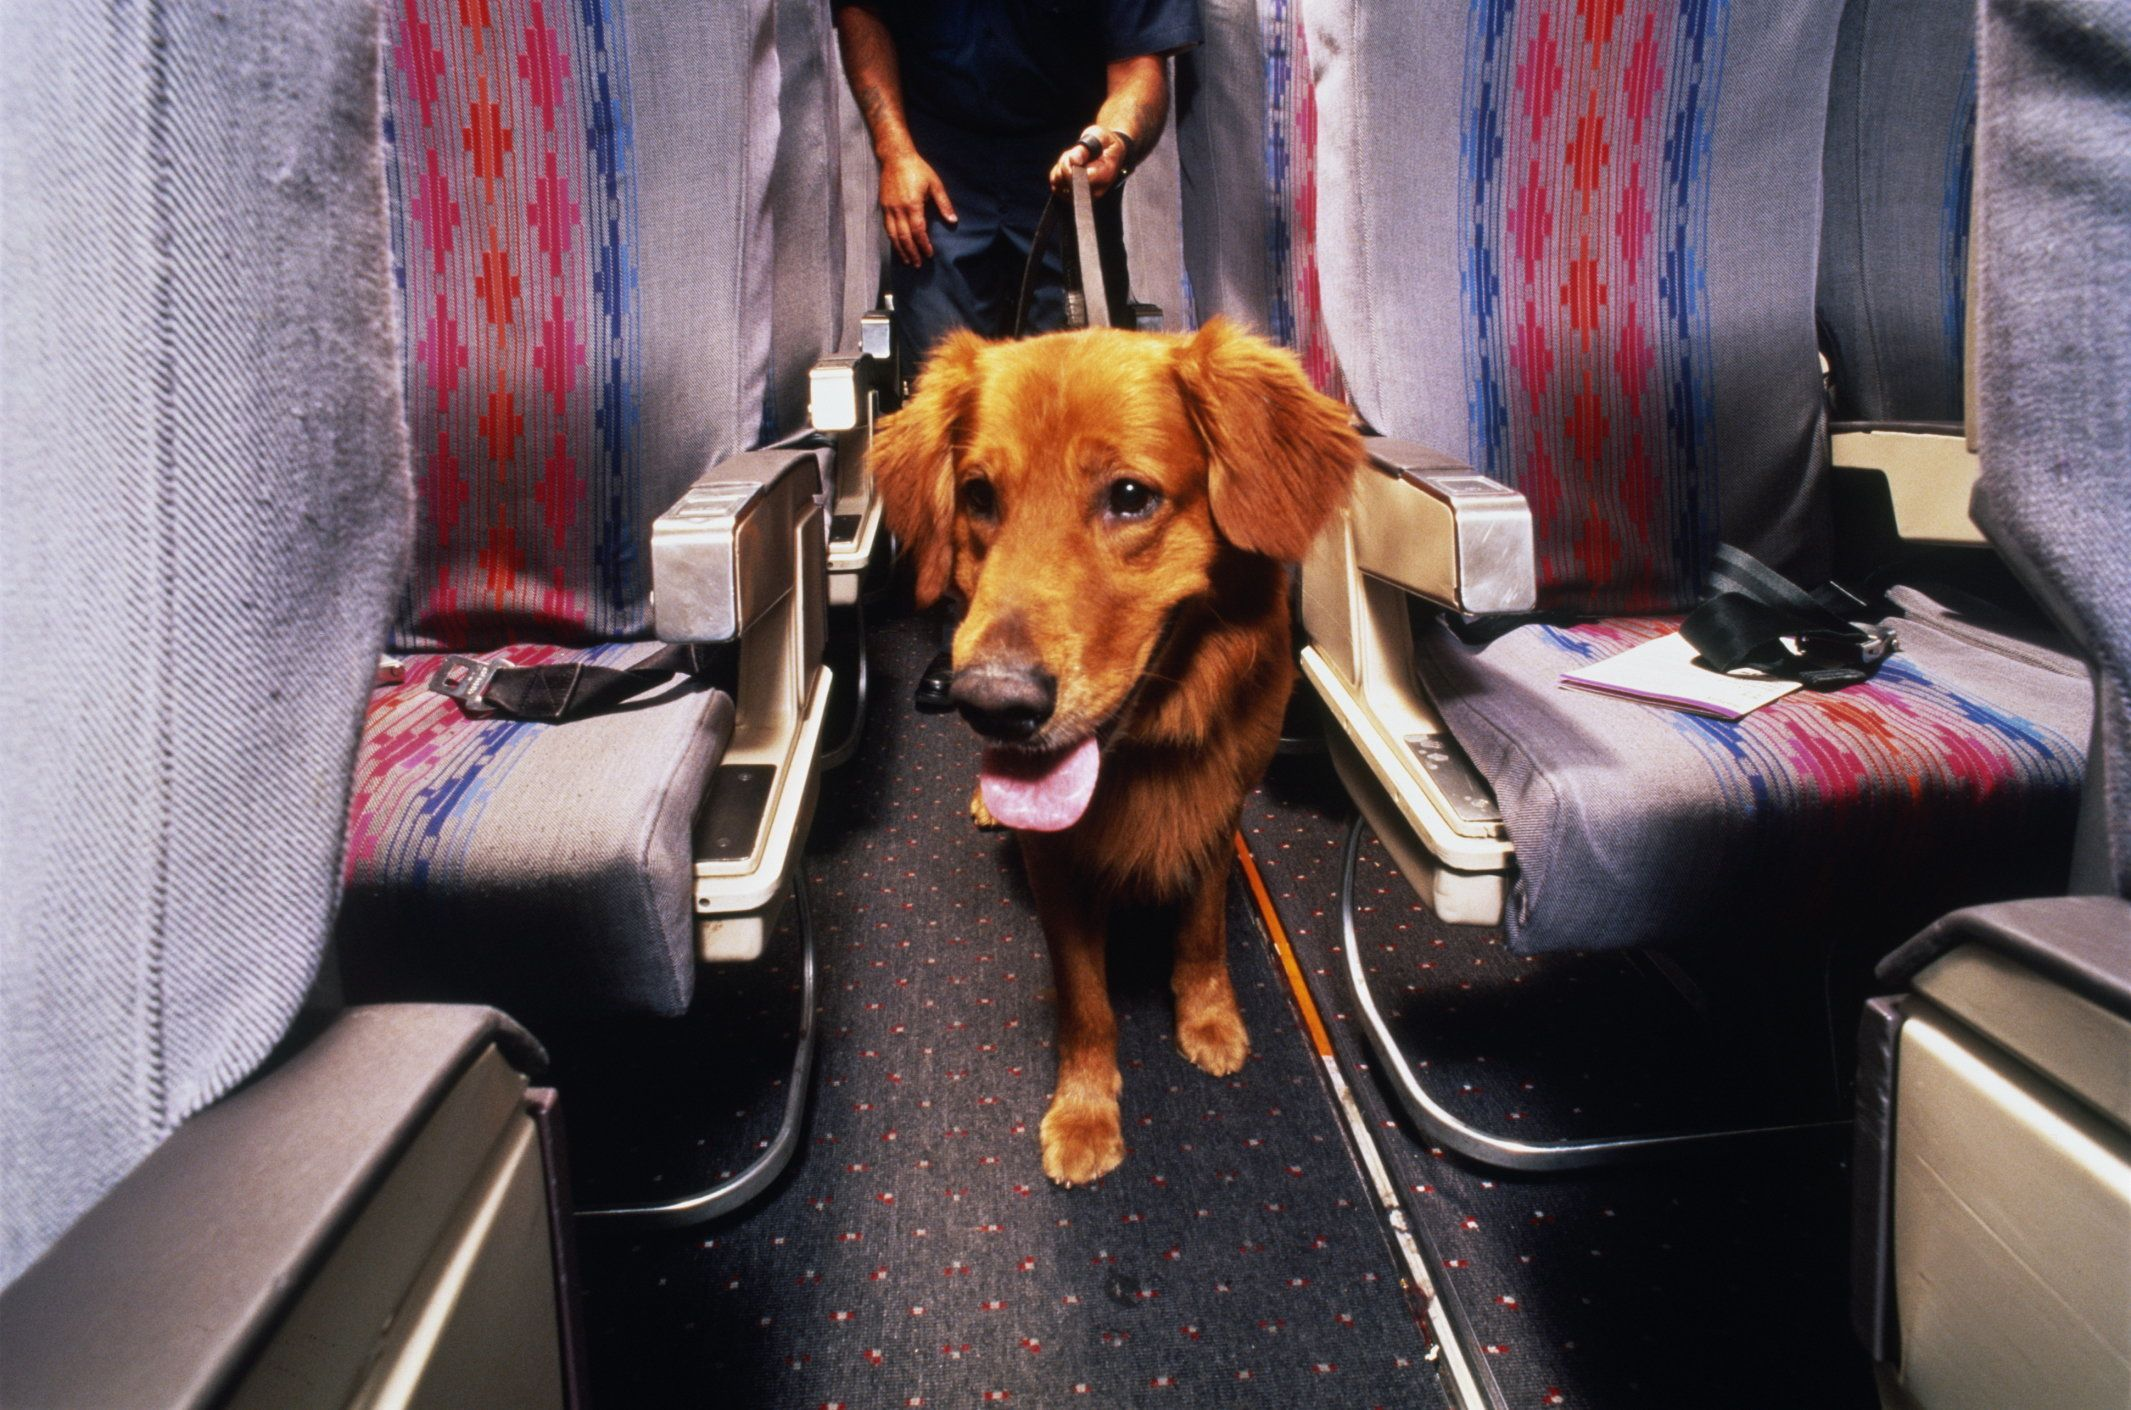 U.S. Customs officer and canine partner conducting inspection of commercial passenger aircraft for drug smuggling.